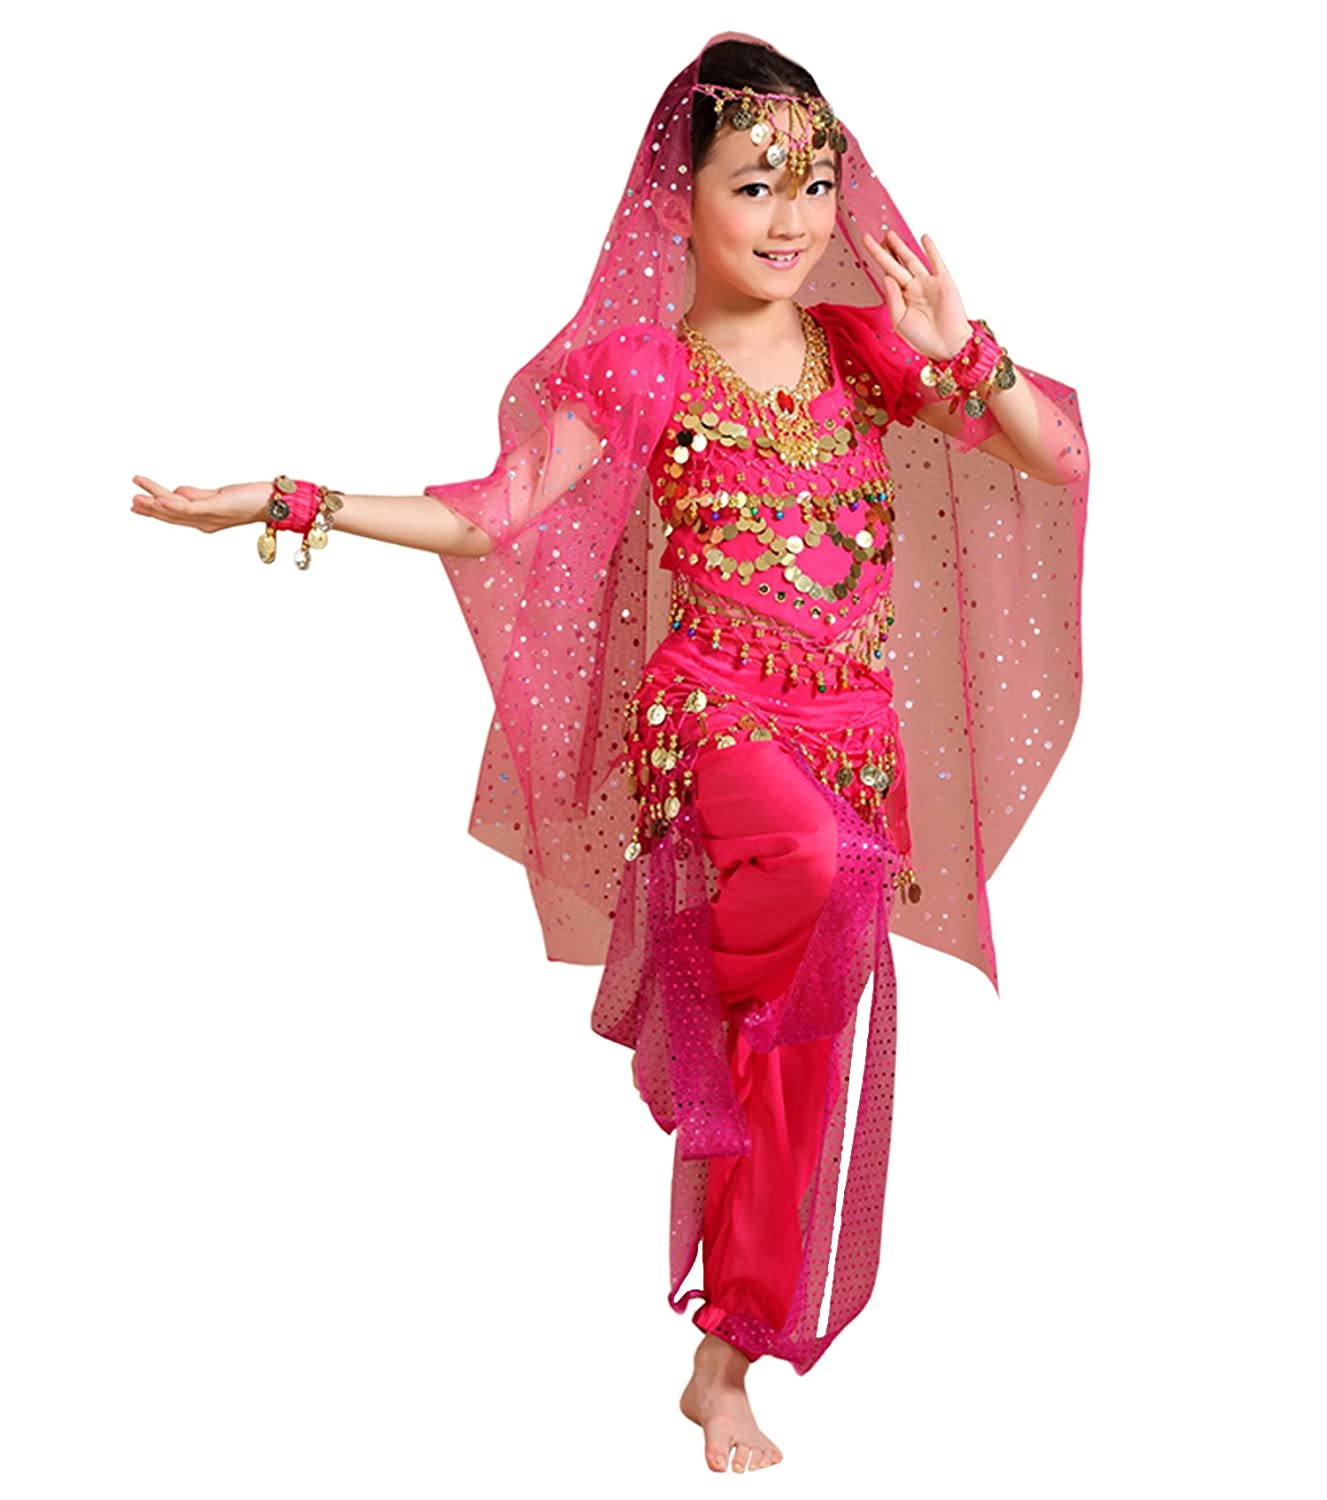 285de36808ce Amazon.com: Astage Children Indian Belly Dance Girl Costume Halloween  Performance Sets: Clothing